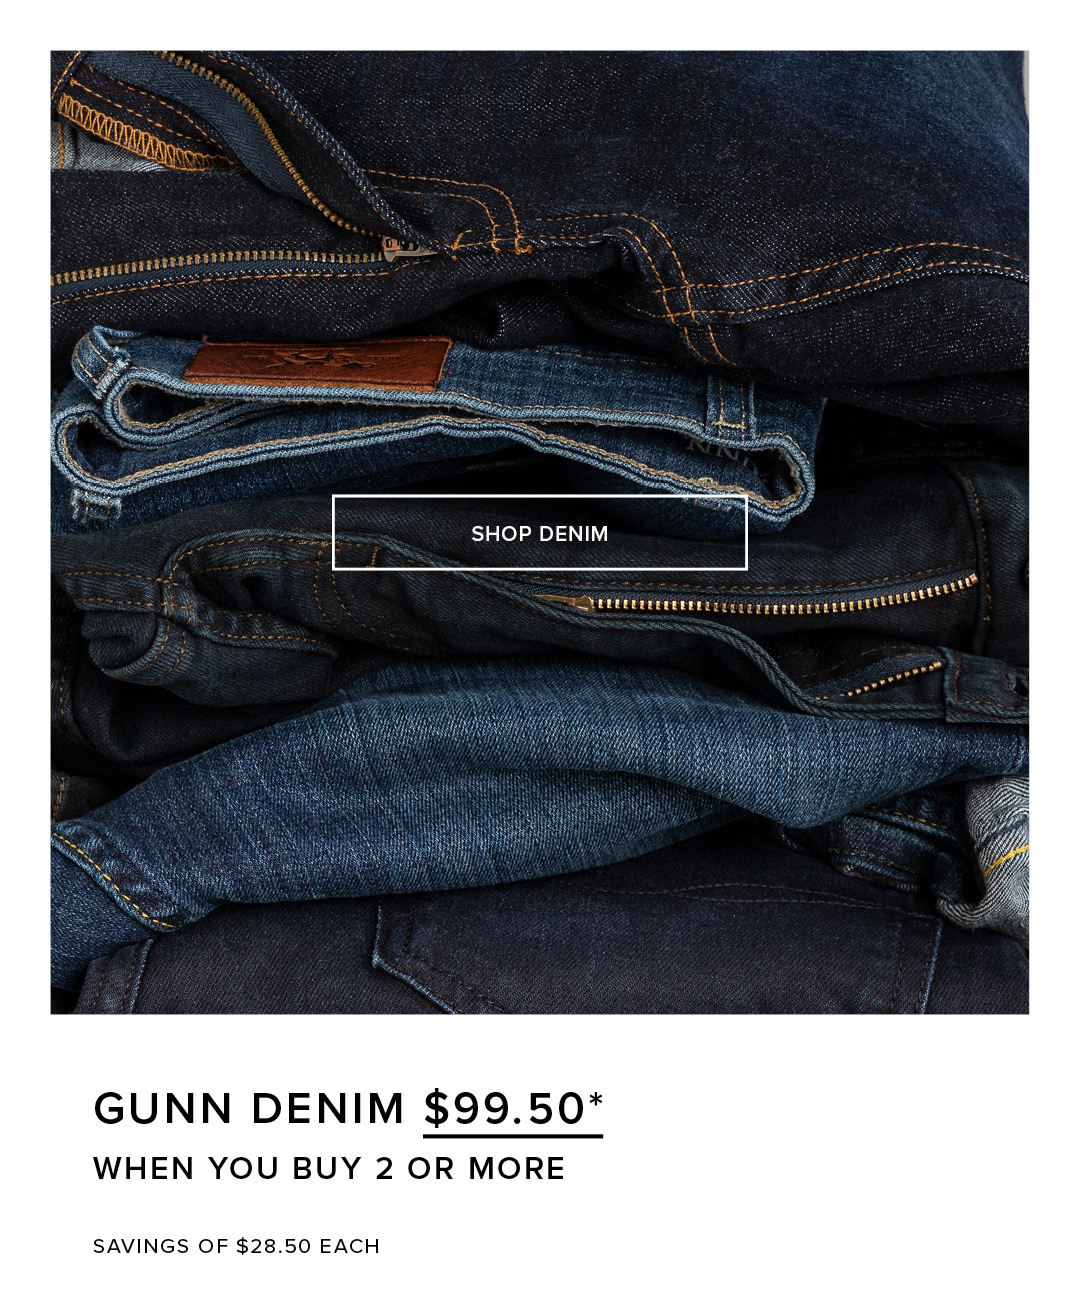 Gunn Denim - $99.50* When You Buy 2 Or More